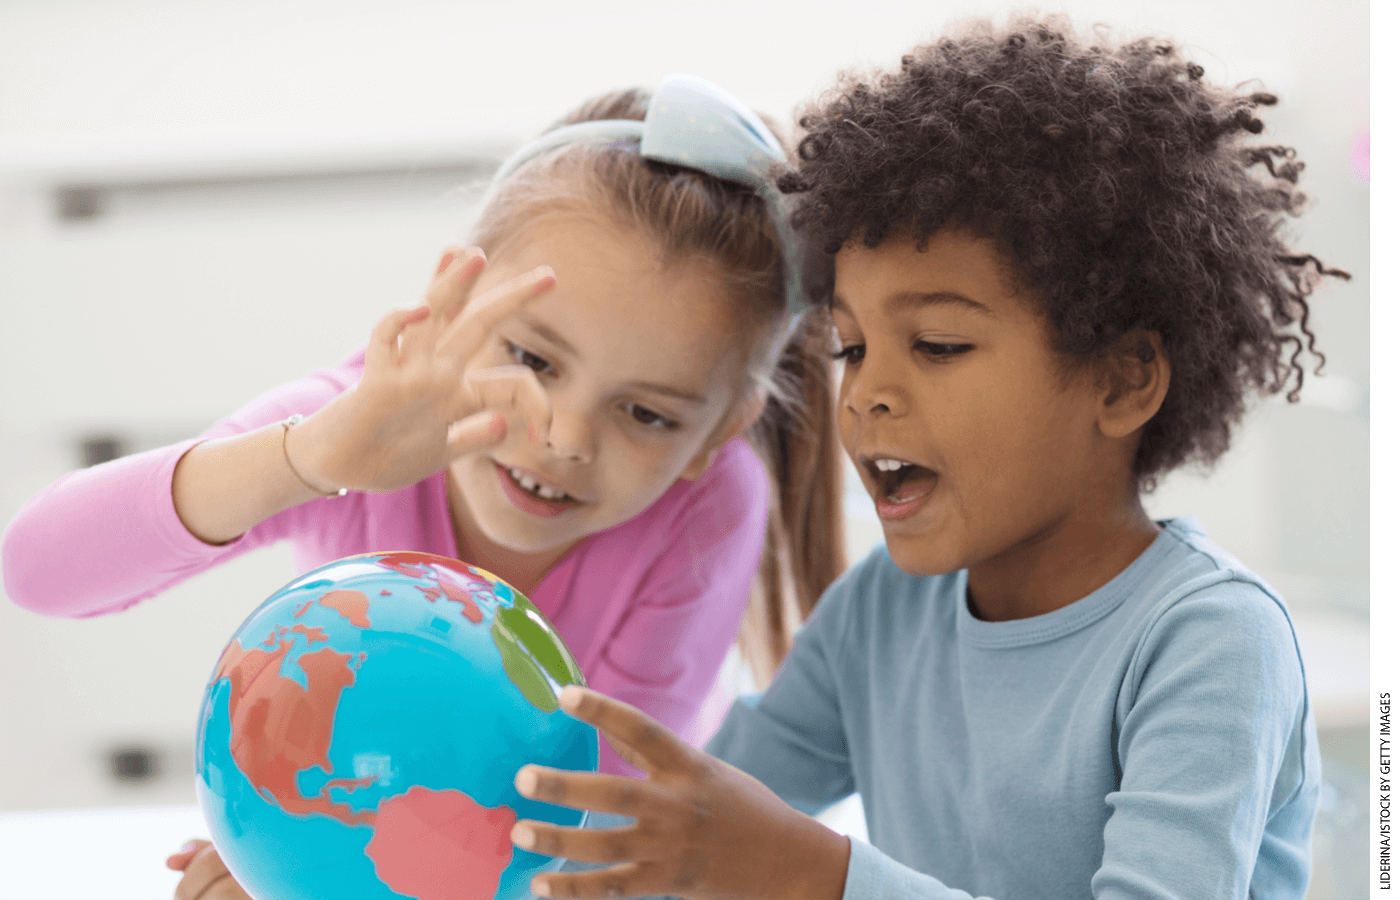 Two students in a classroom looking at a globe